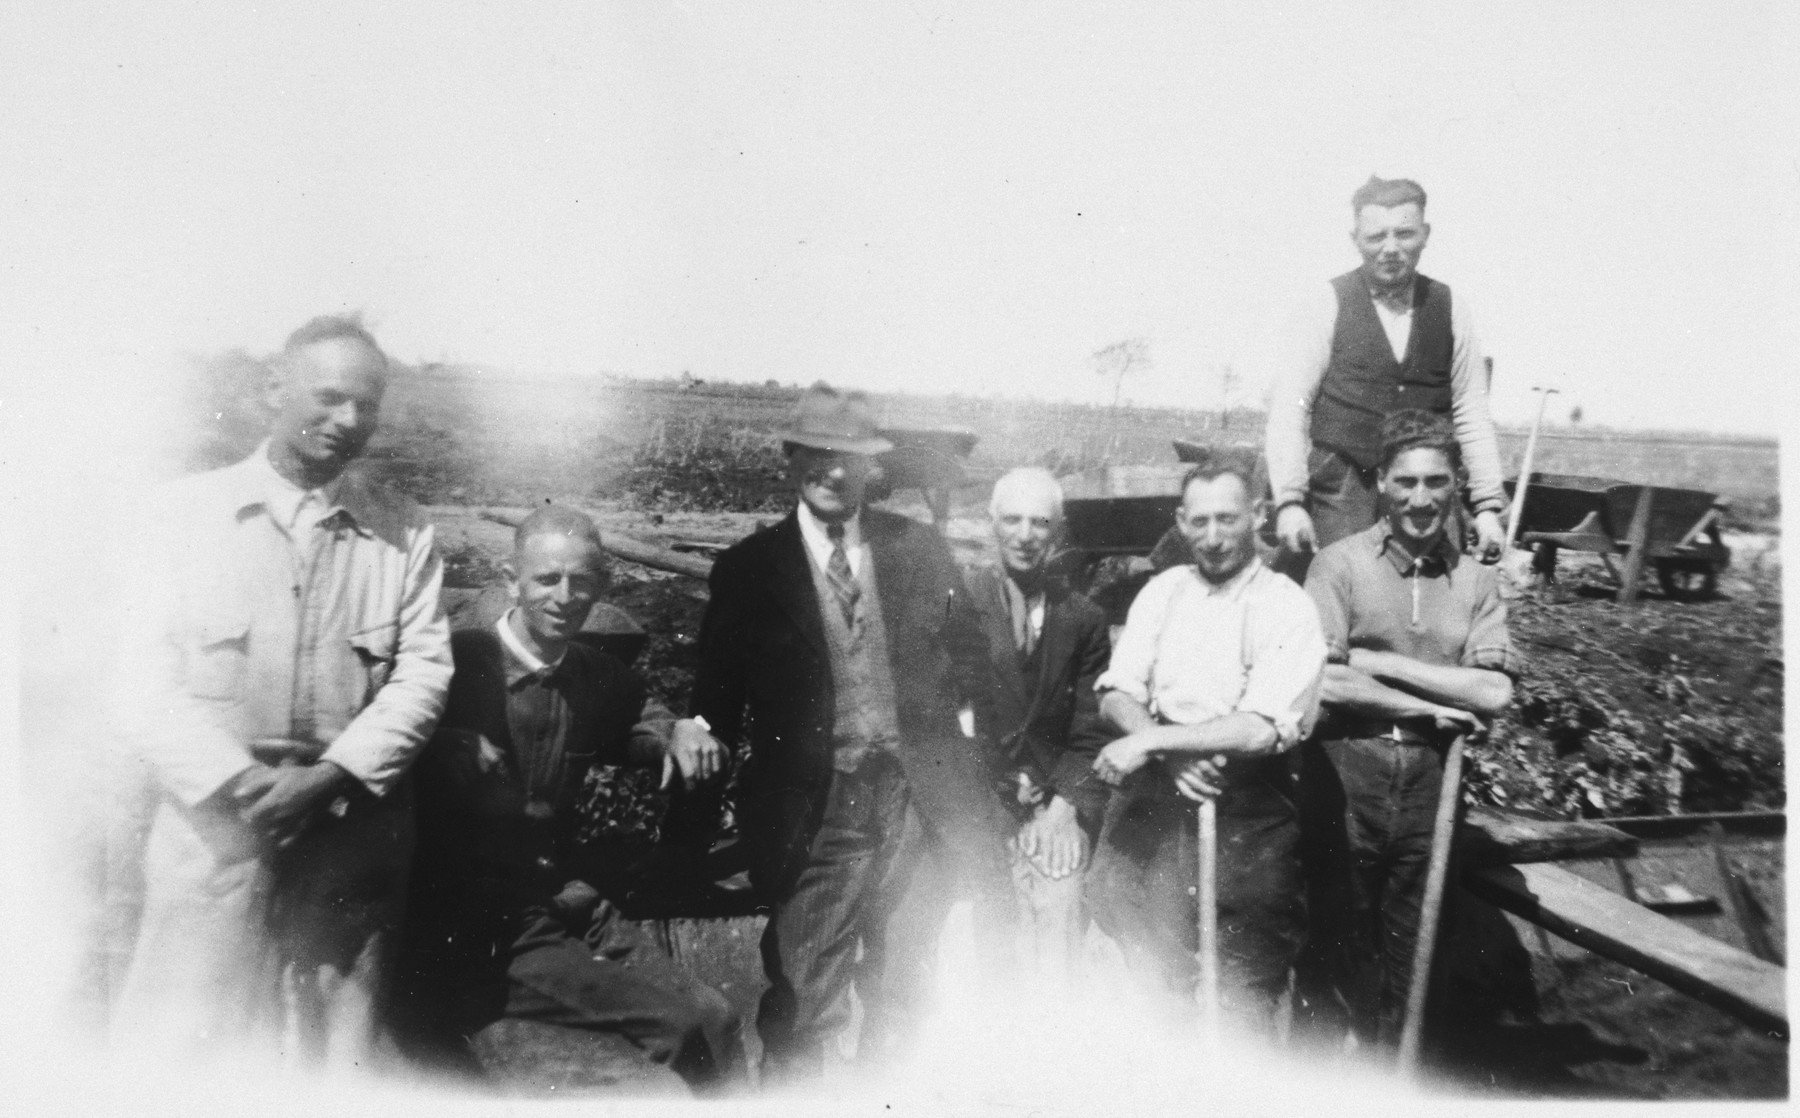 Prisoners are forced to dig a canal in the Staphorst-Rouveen labor camp.  Pictured from left to right are Goedhart, Cardozo, Viterwyk, Vischraper, Cohen, Jas, and Coenraad Rood.